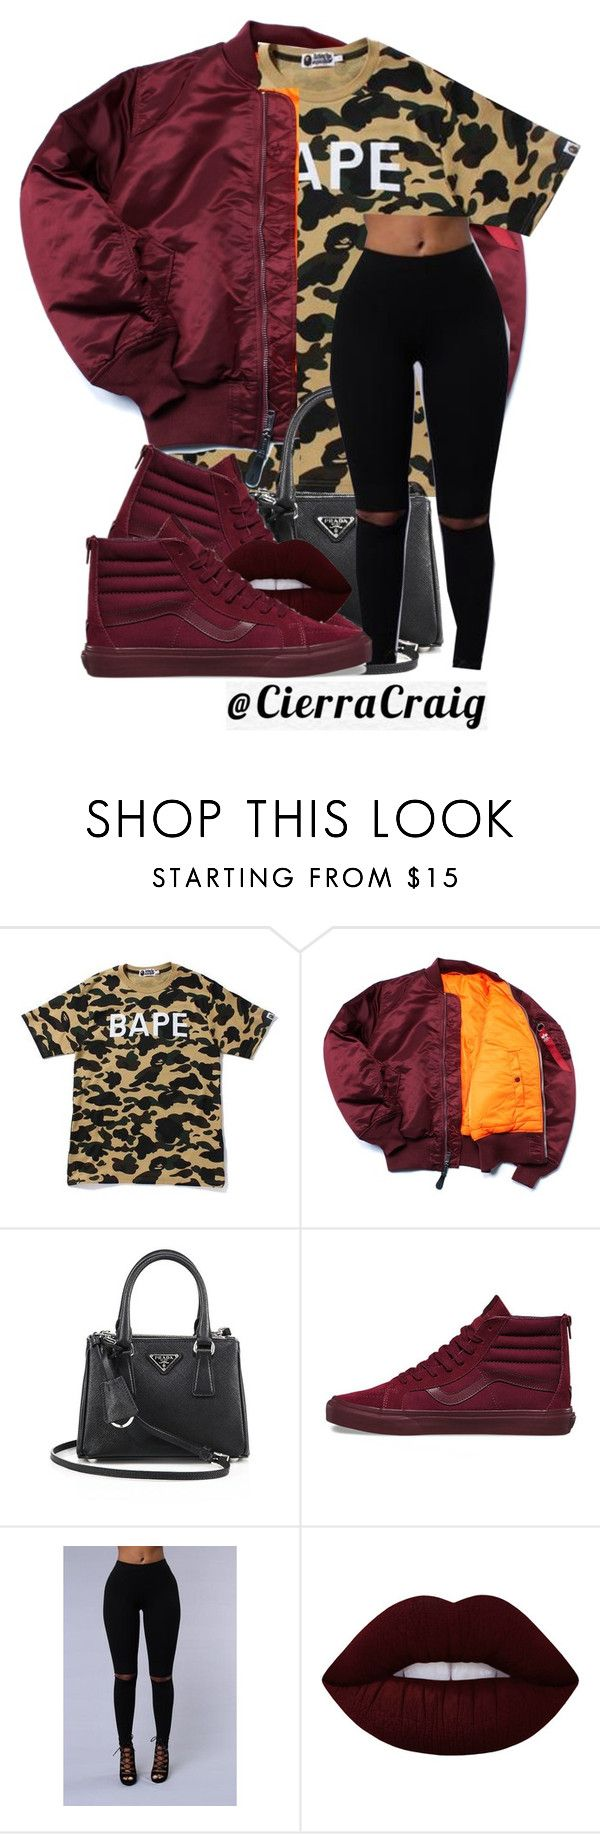 """""""Street Fashion"""" by cierracraig ❤ liked on Polyvore featuring A BATHING APE, Prada and Vans"""